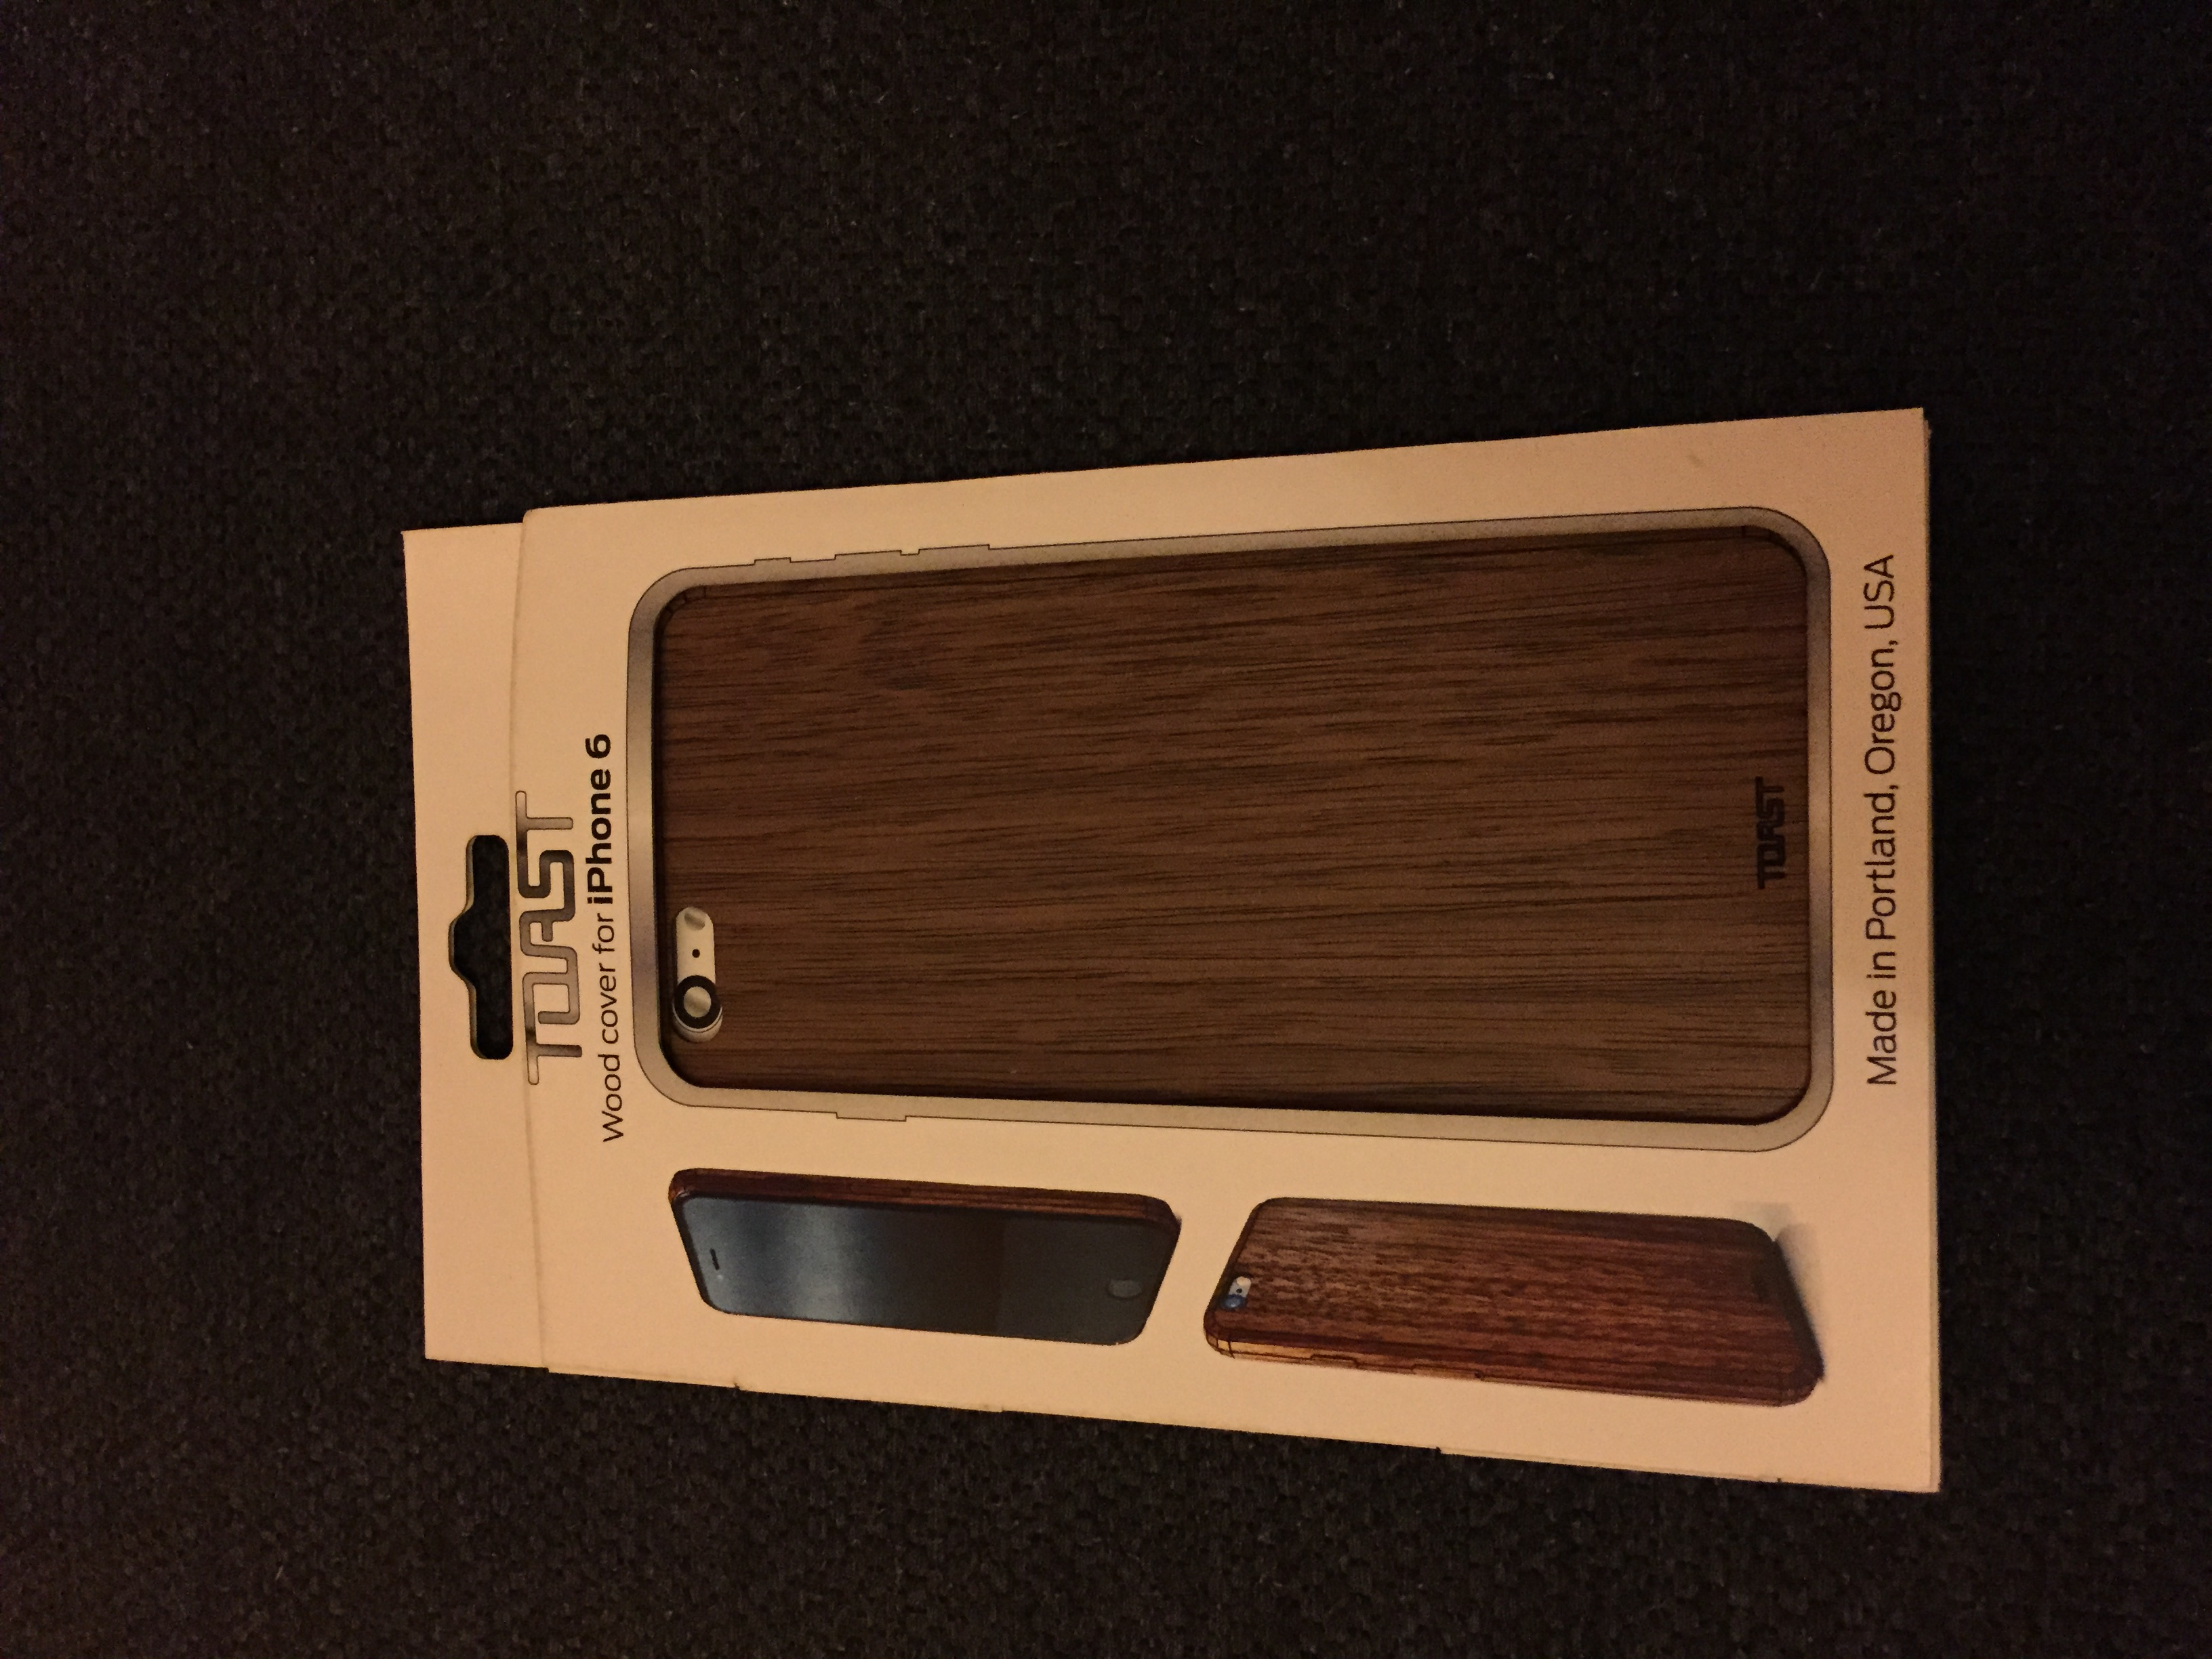 TOAST Real Wood Covers for iPhone Made in USA